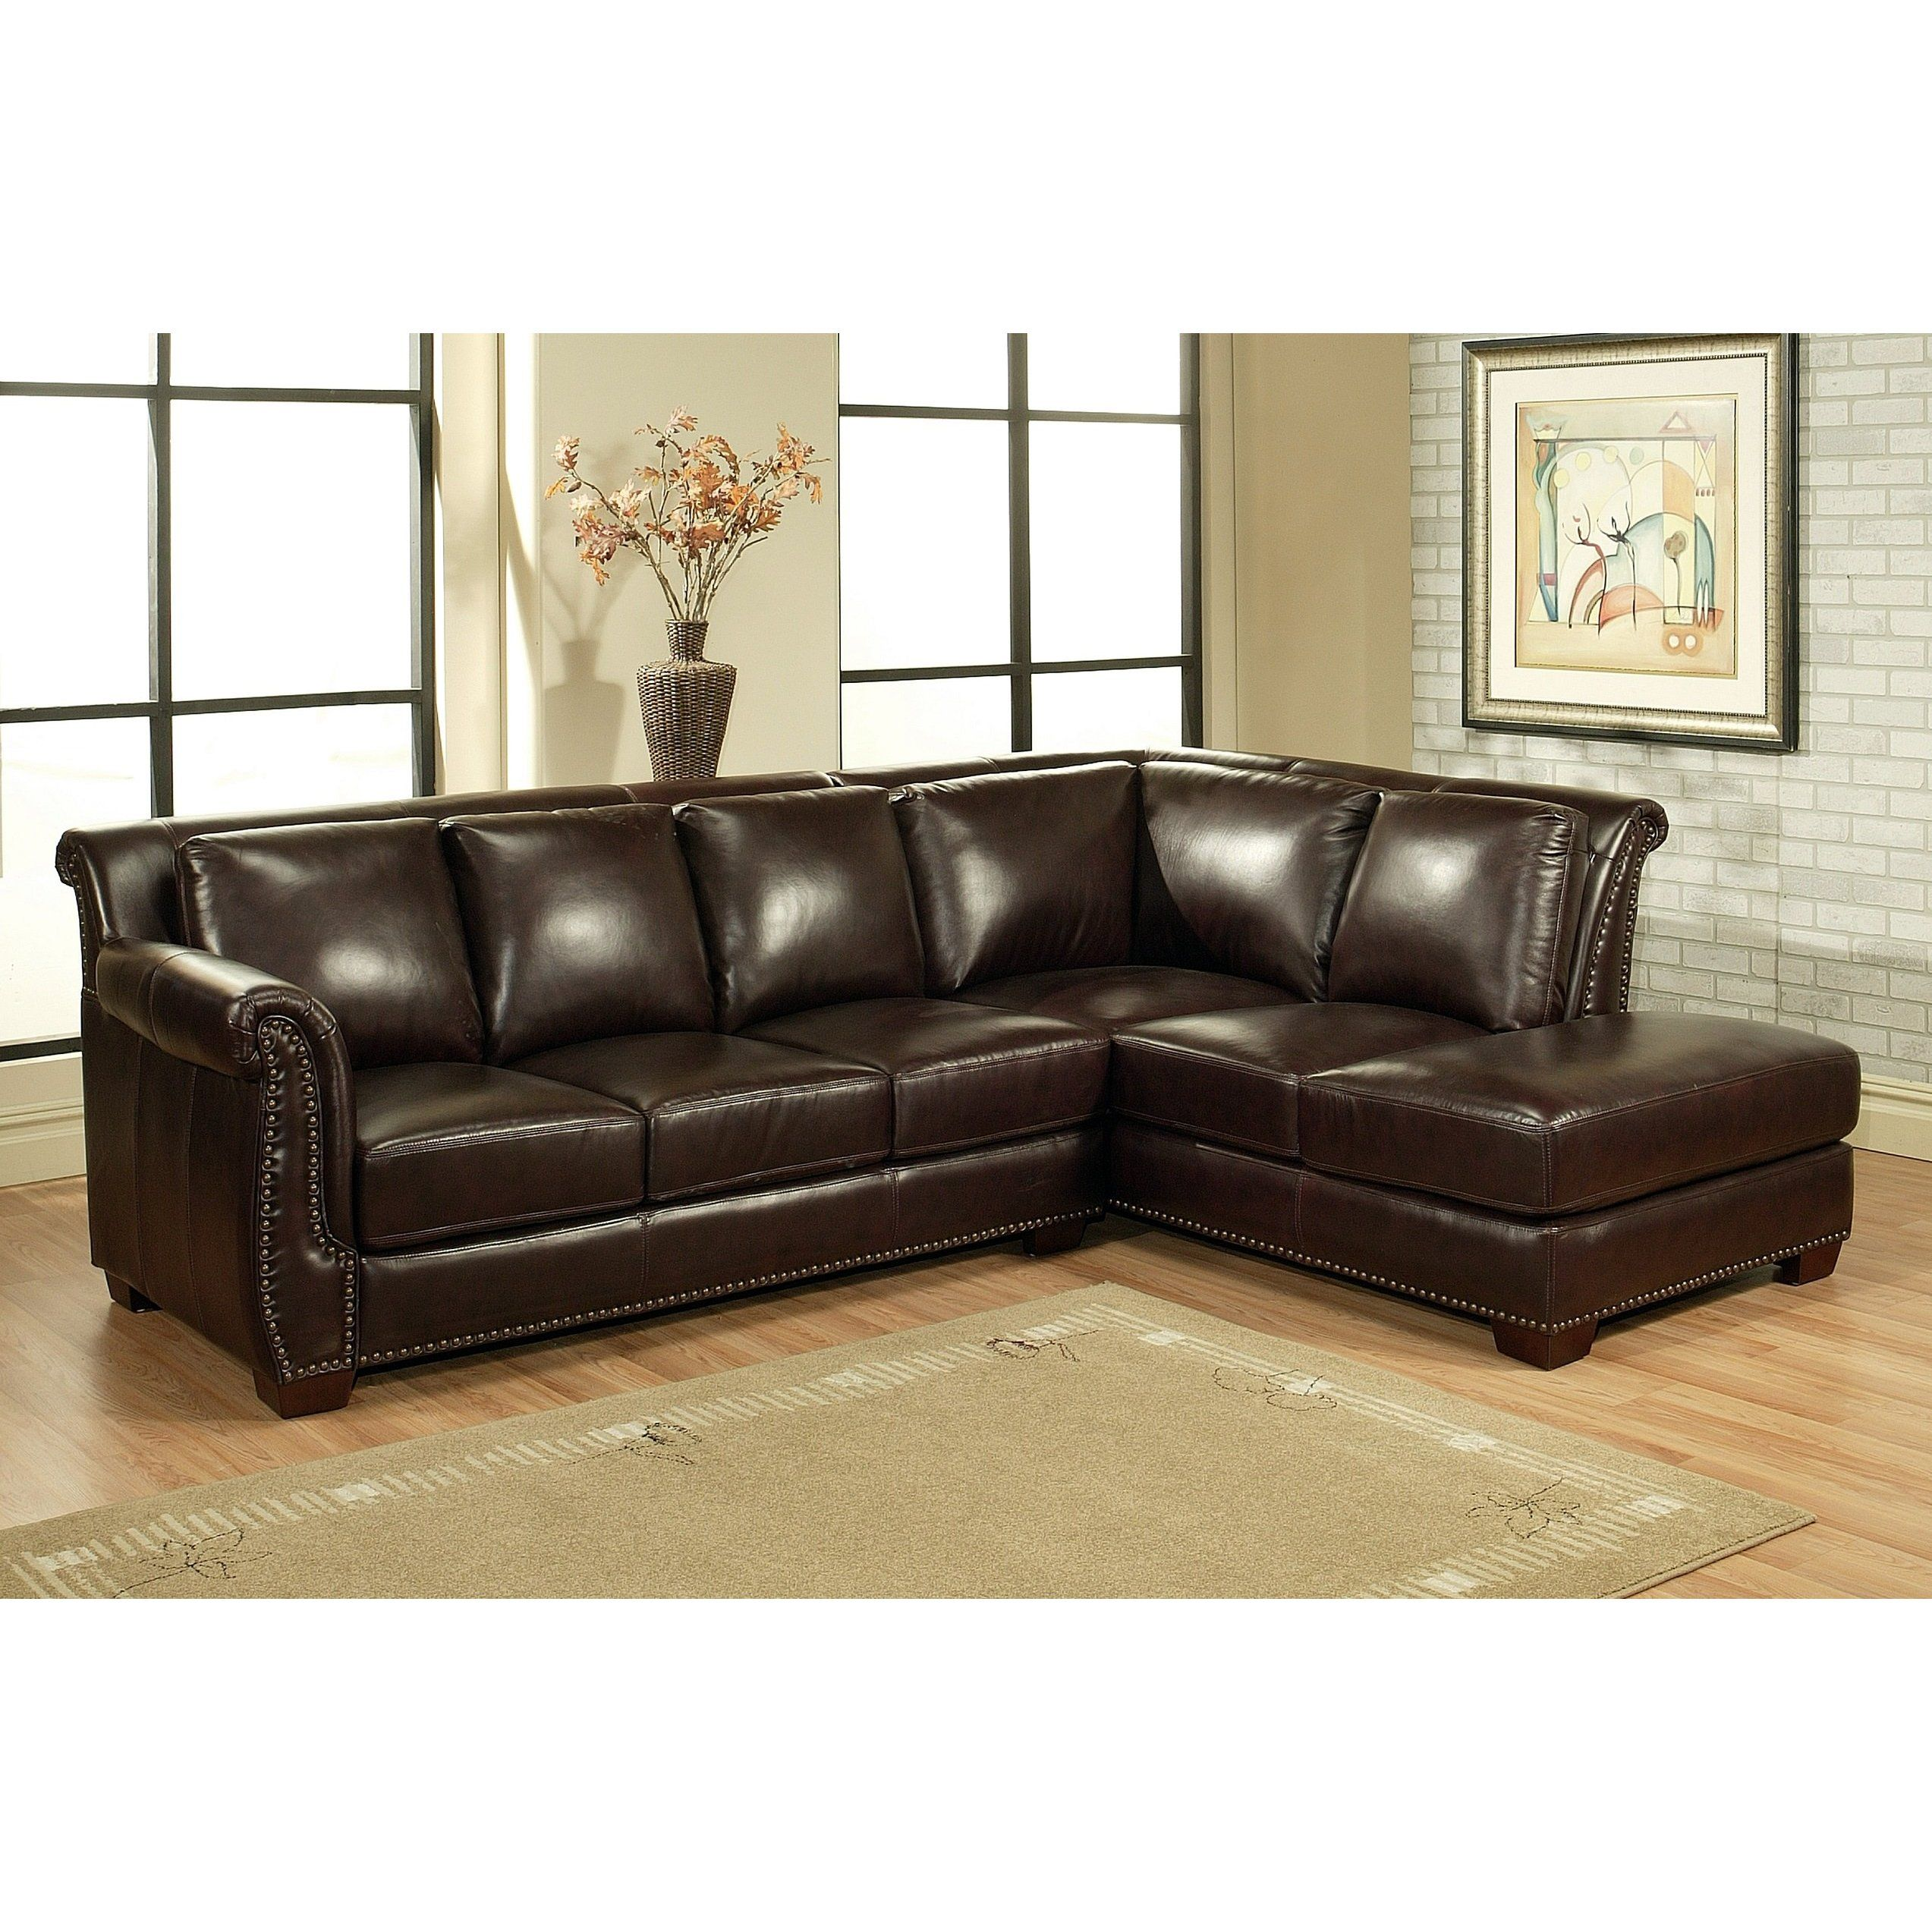 Marvelous Encore Burgundy Italian Leather Sectional Sofa With A Machost Co Dining Chair Design Ideas Machostcouk